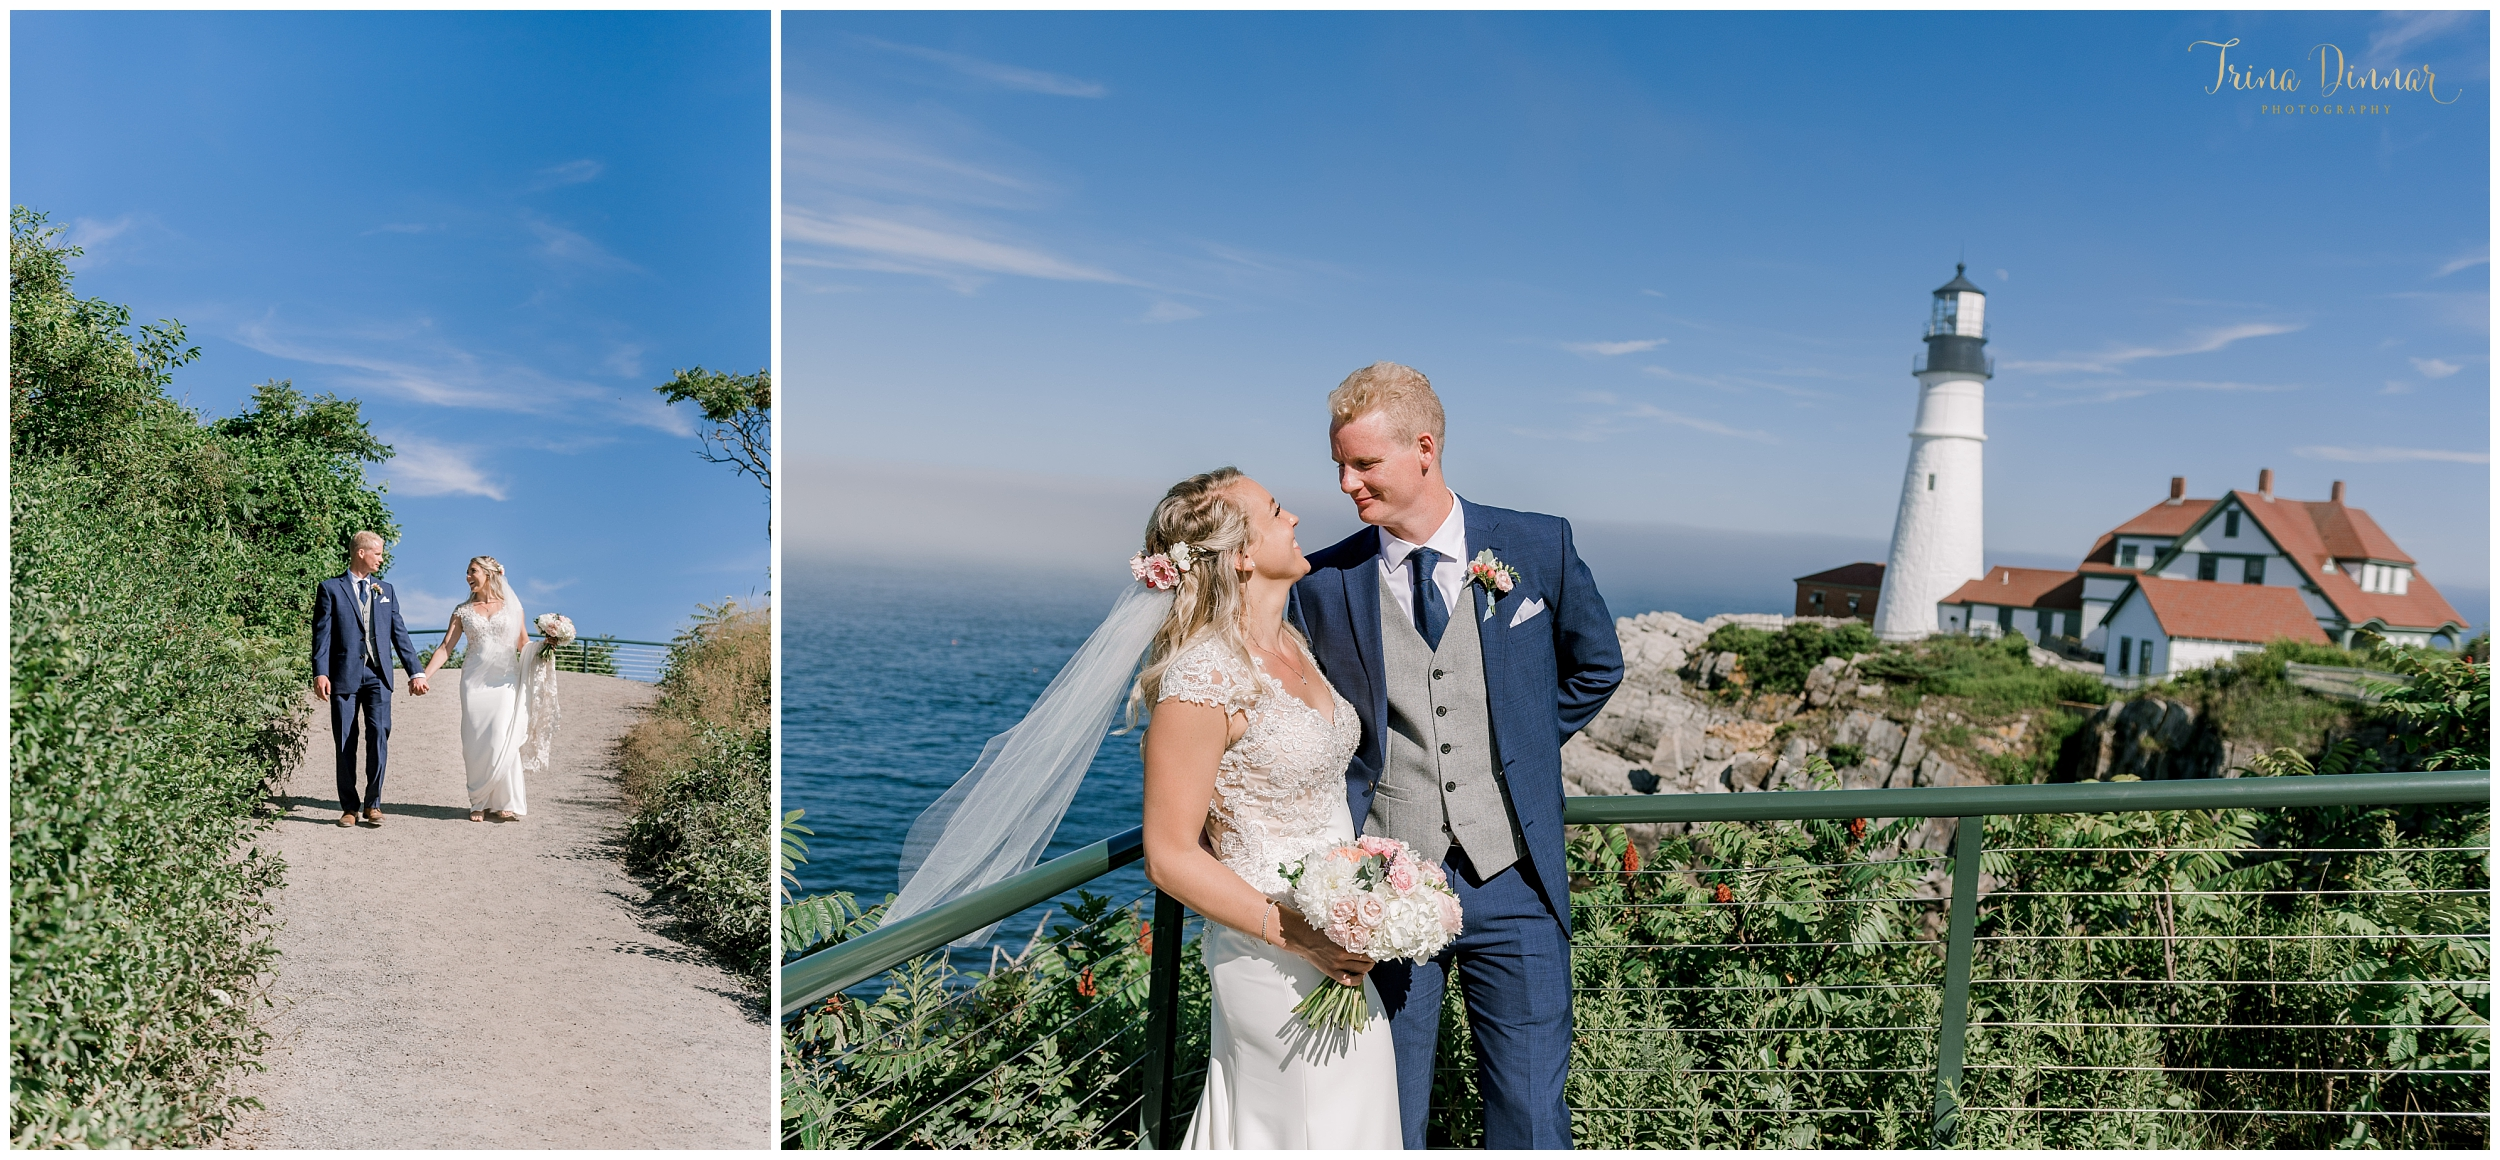 Coastal Maine Wedding in Cape Elizabeth